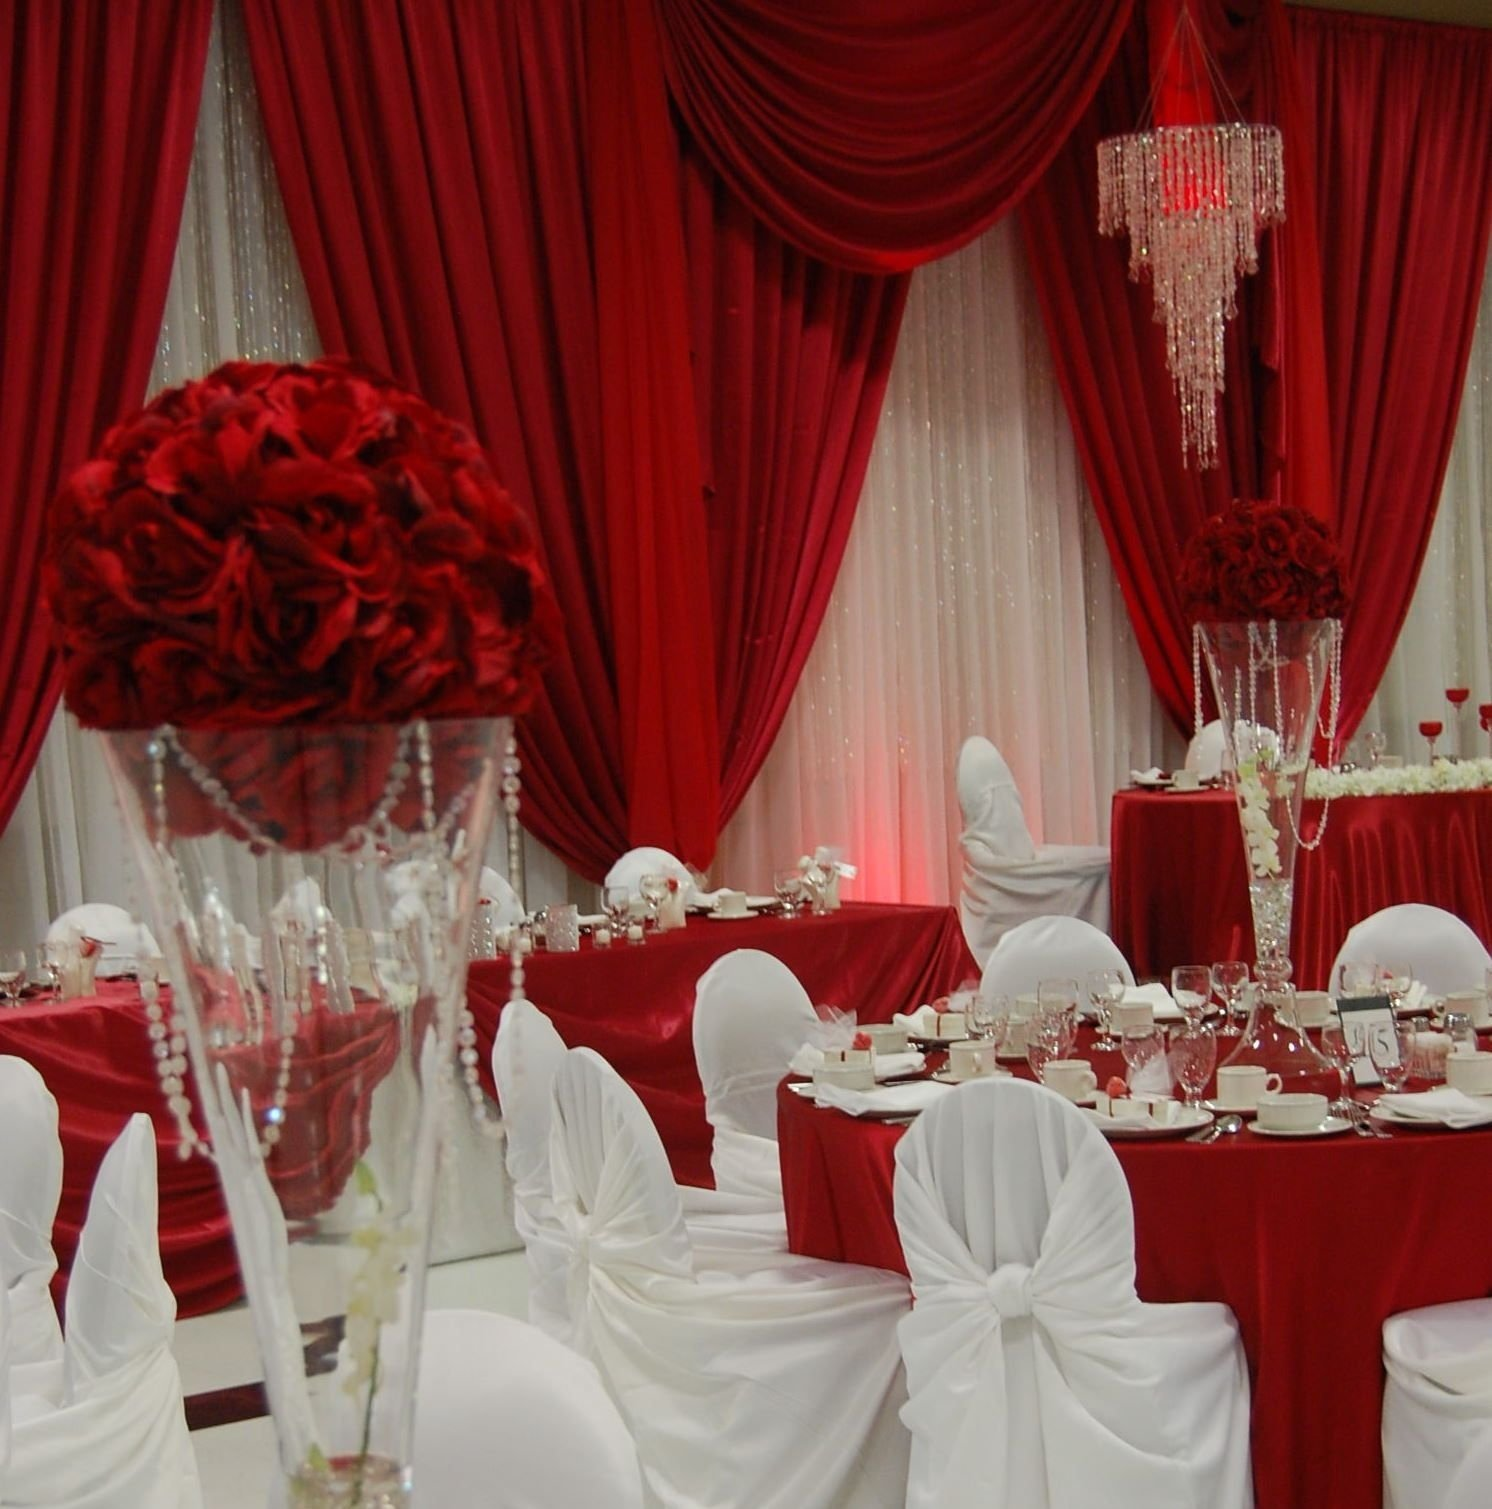 10 Spectacular Red And White Wedding Ideas oh my never been a fan of red and white weddings but this one looks 2020